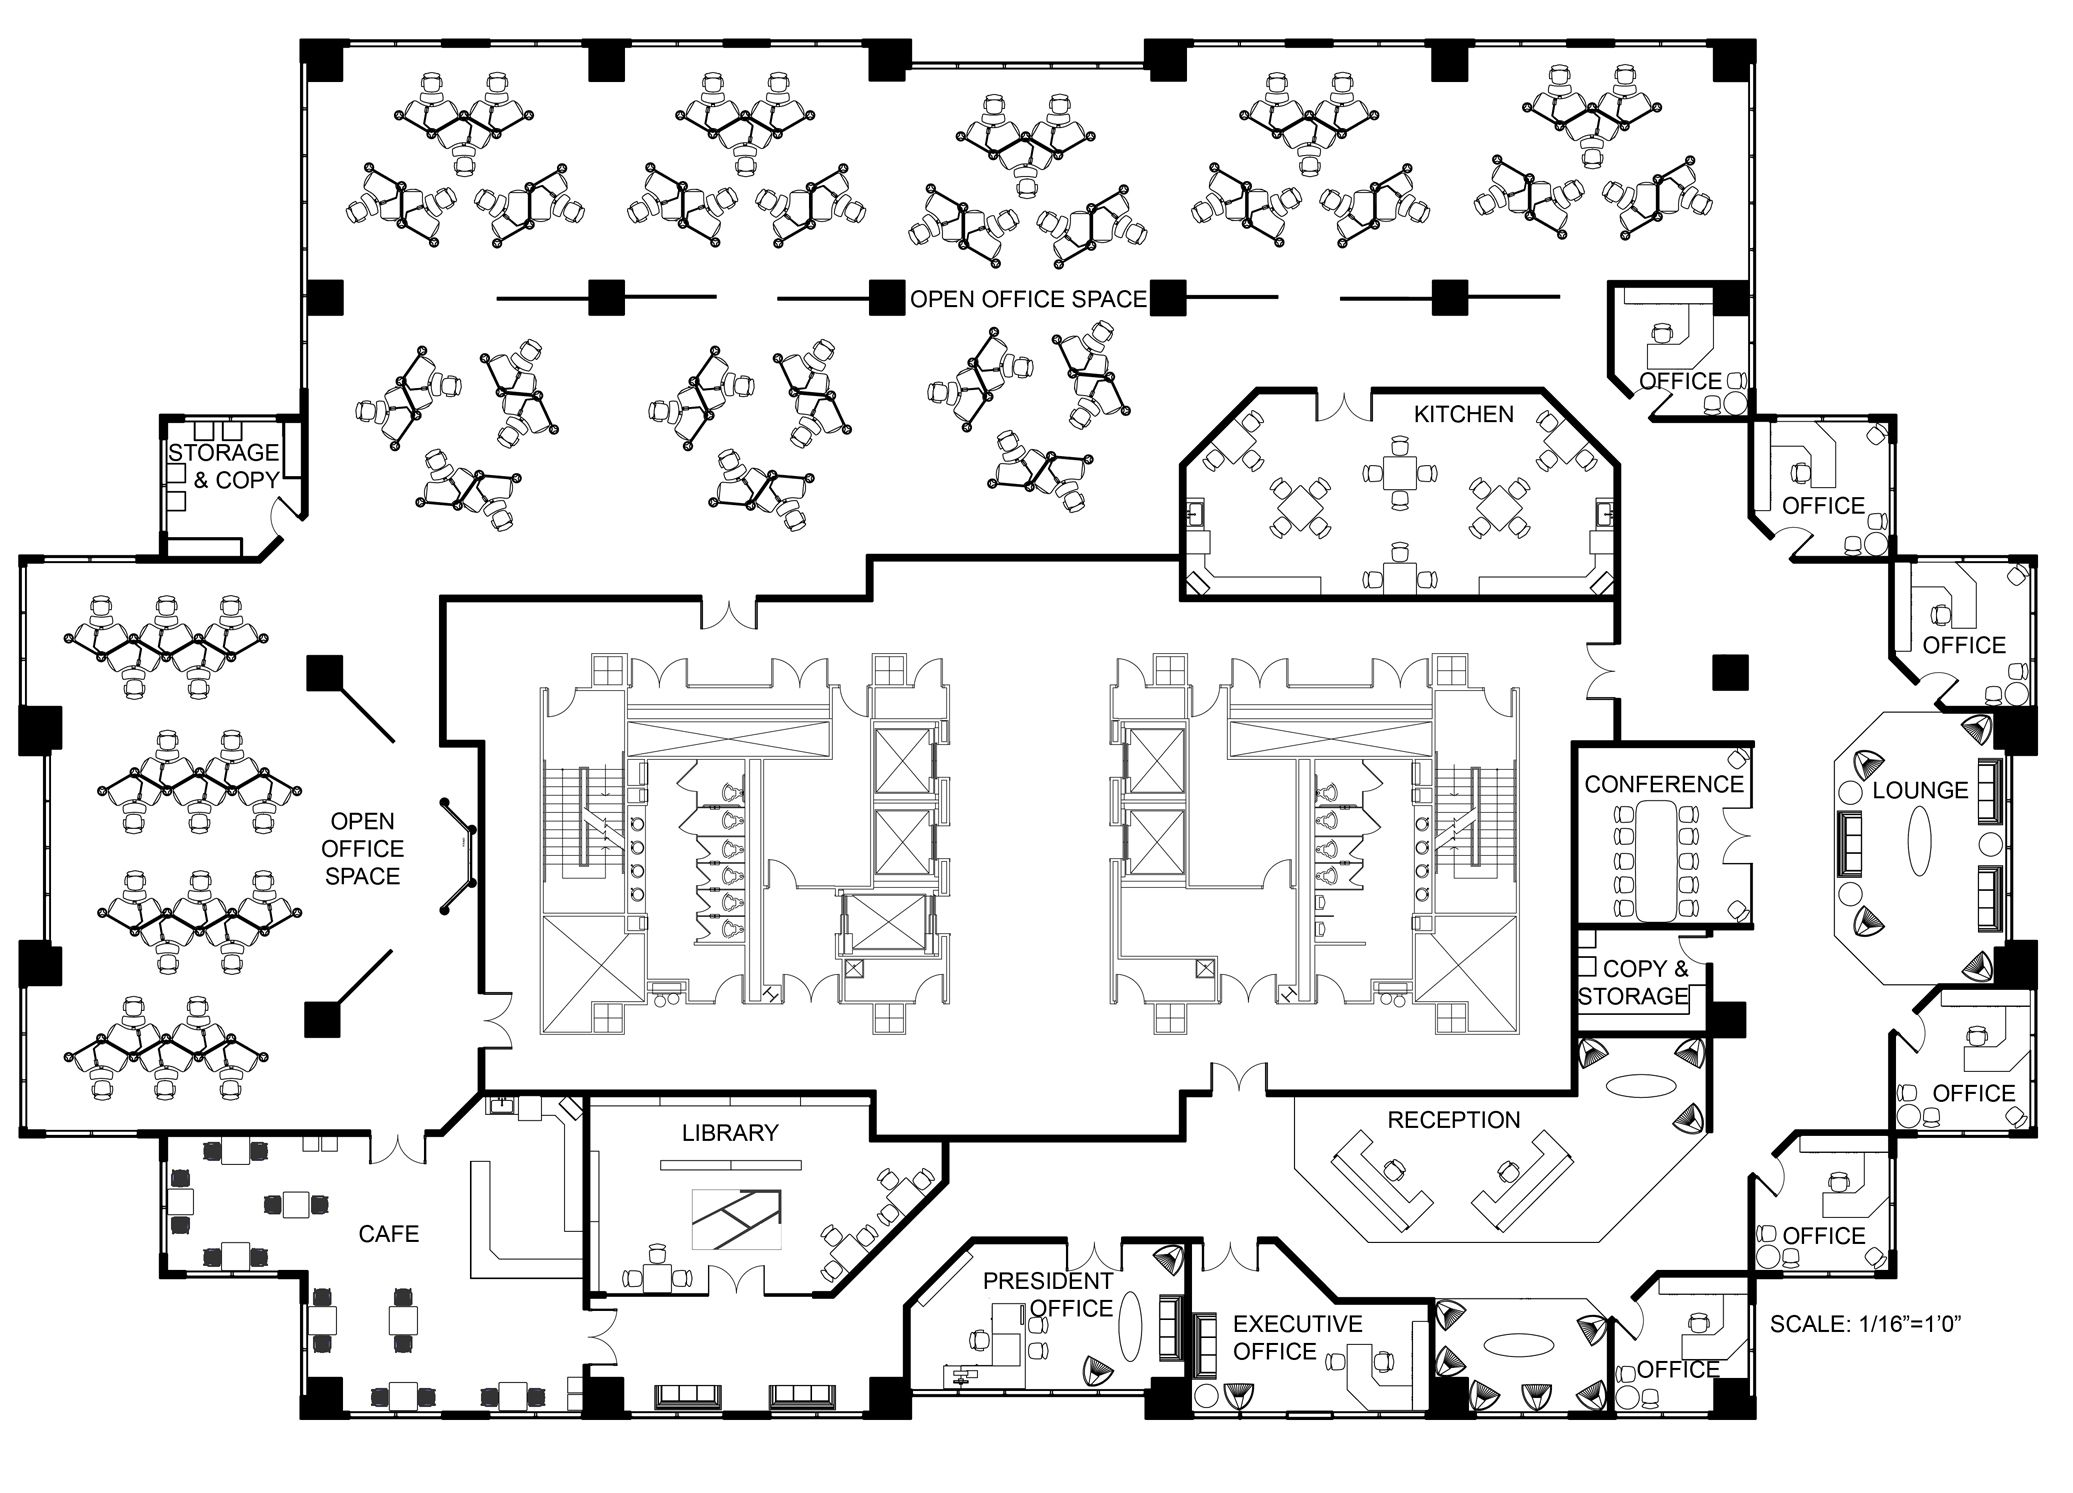 Original 314577 2073 1493 for Office plan design